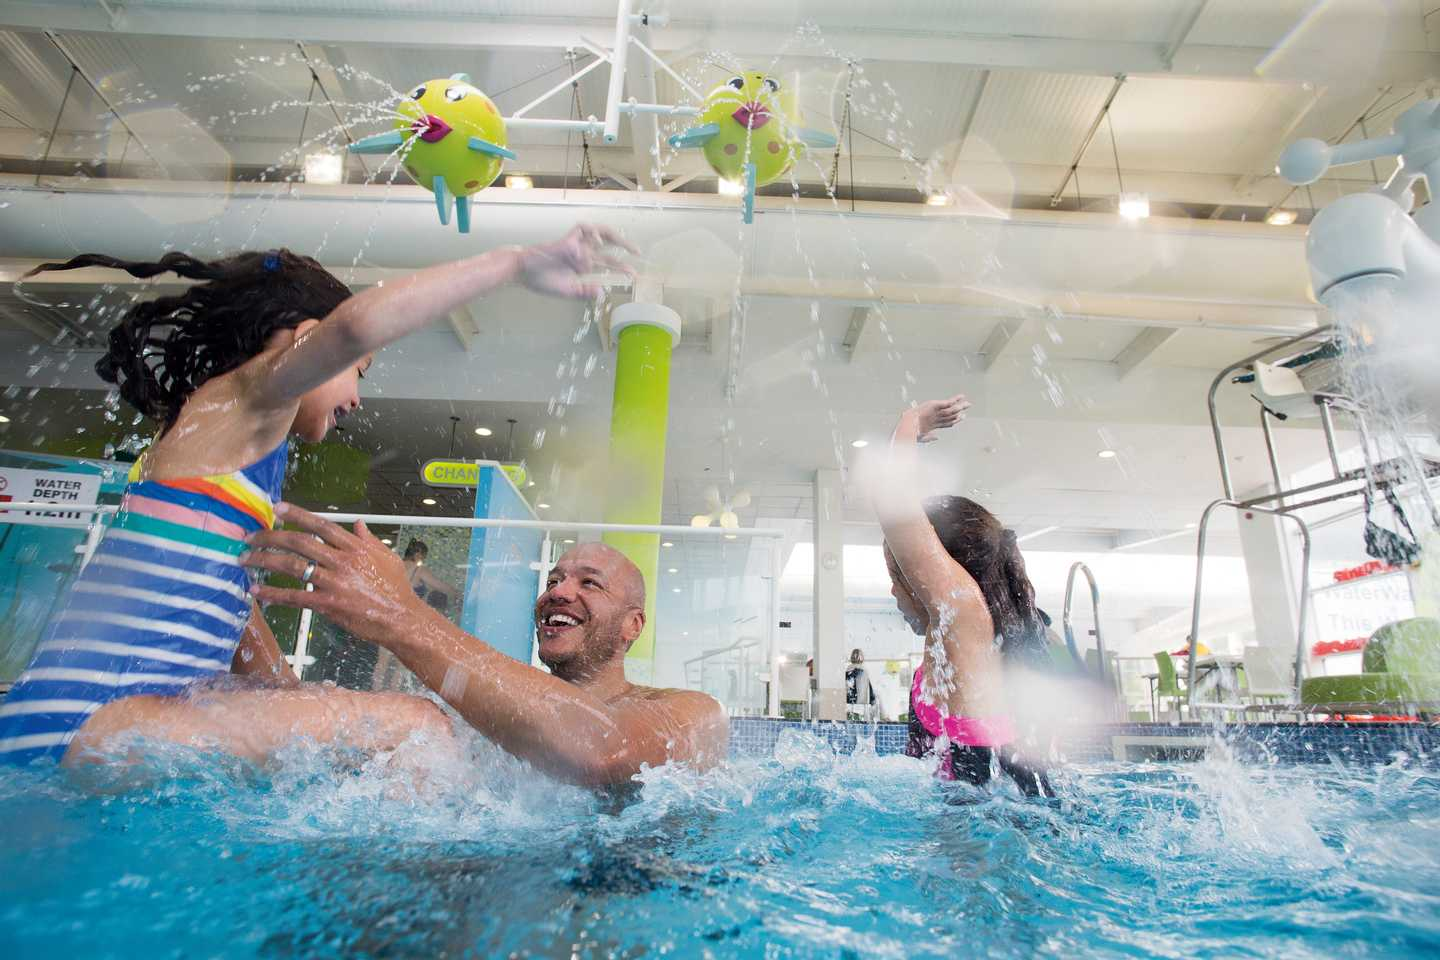 A family splashing around in the heated indoor pool